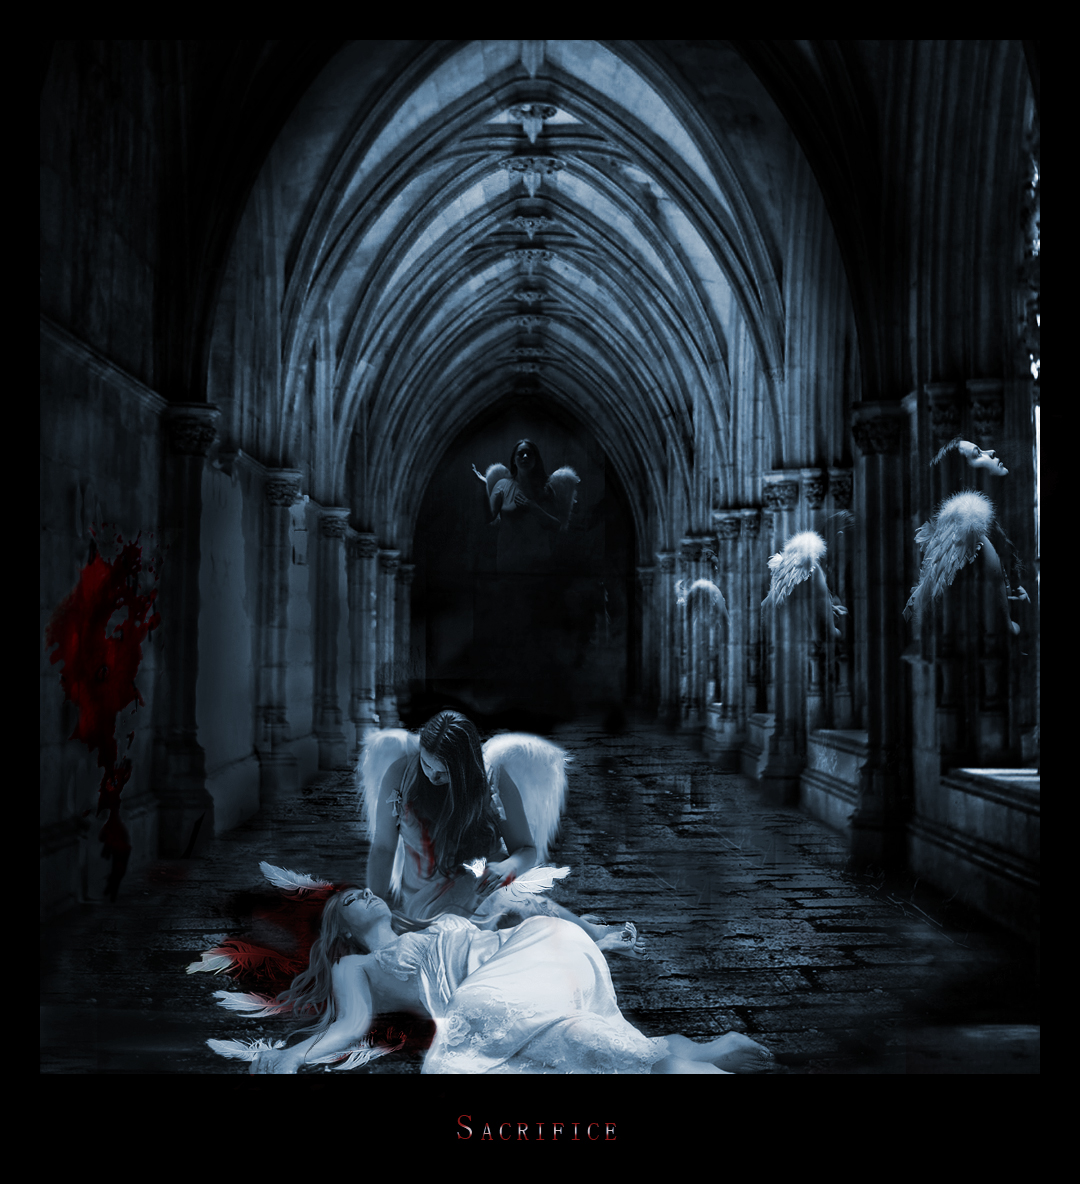 The Sacrifice by LeahConnor